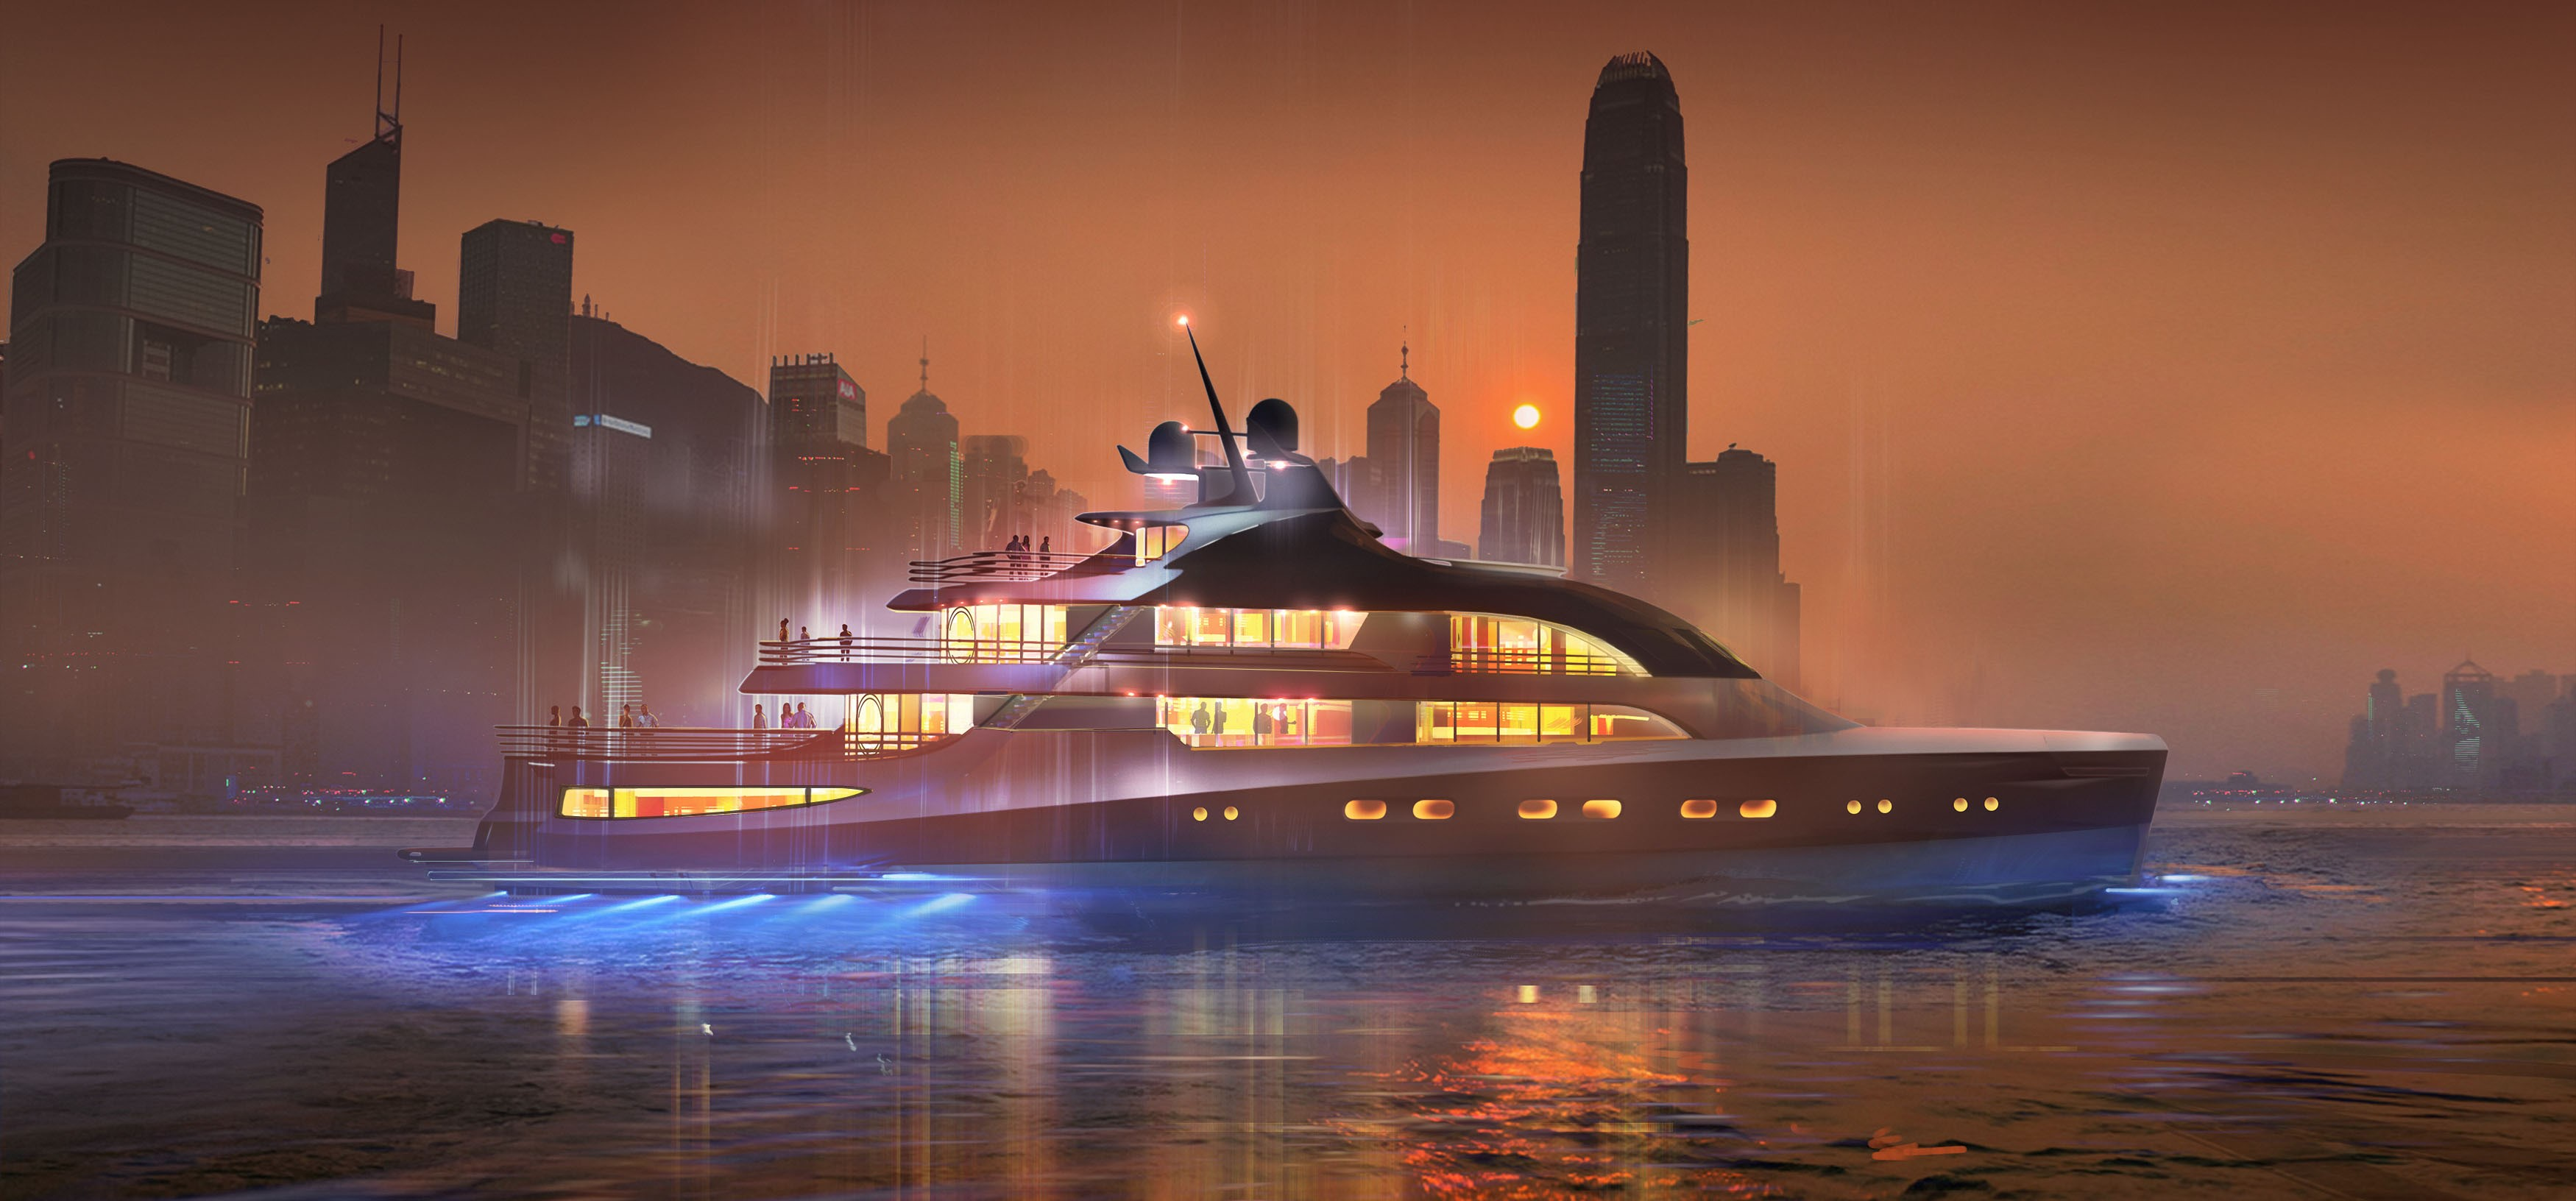 Superyacht Project Chuan by night